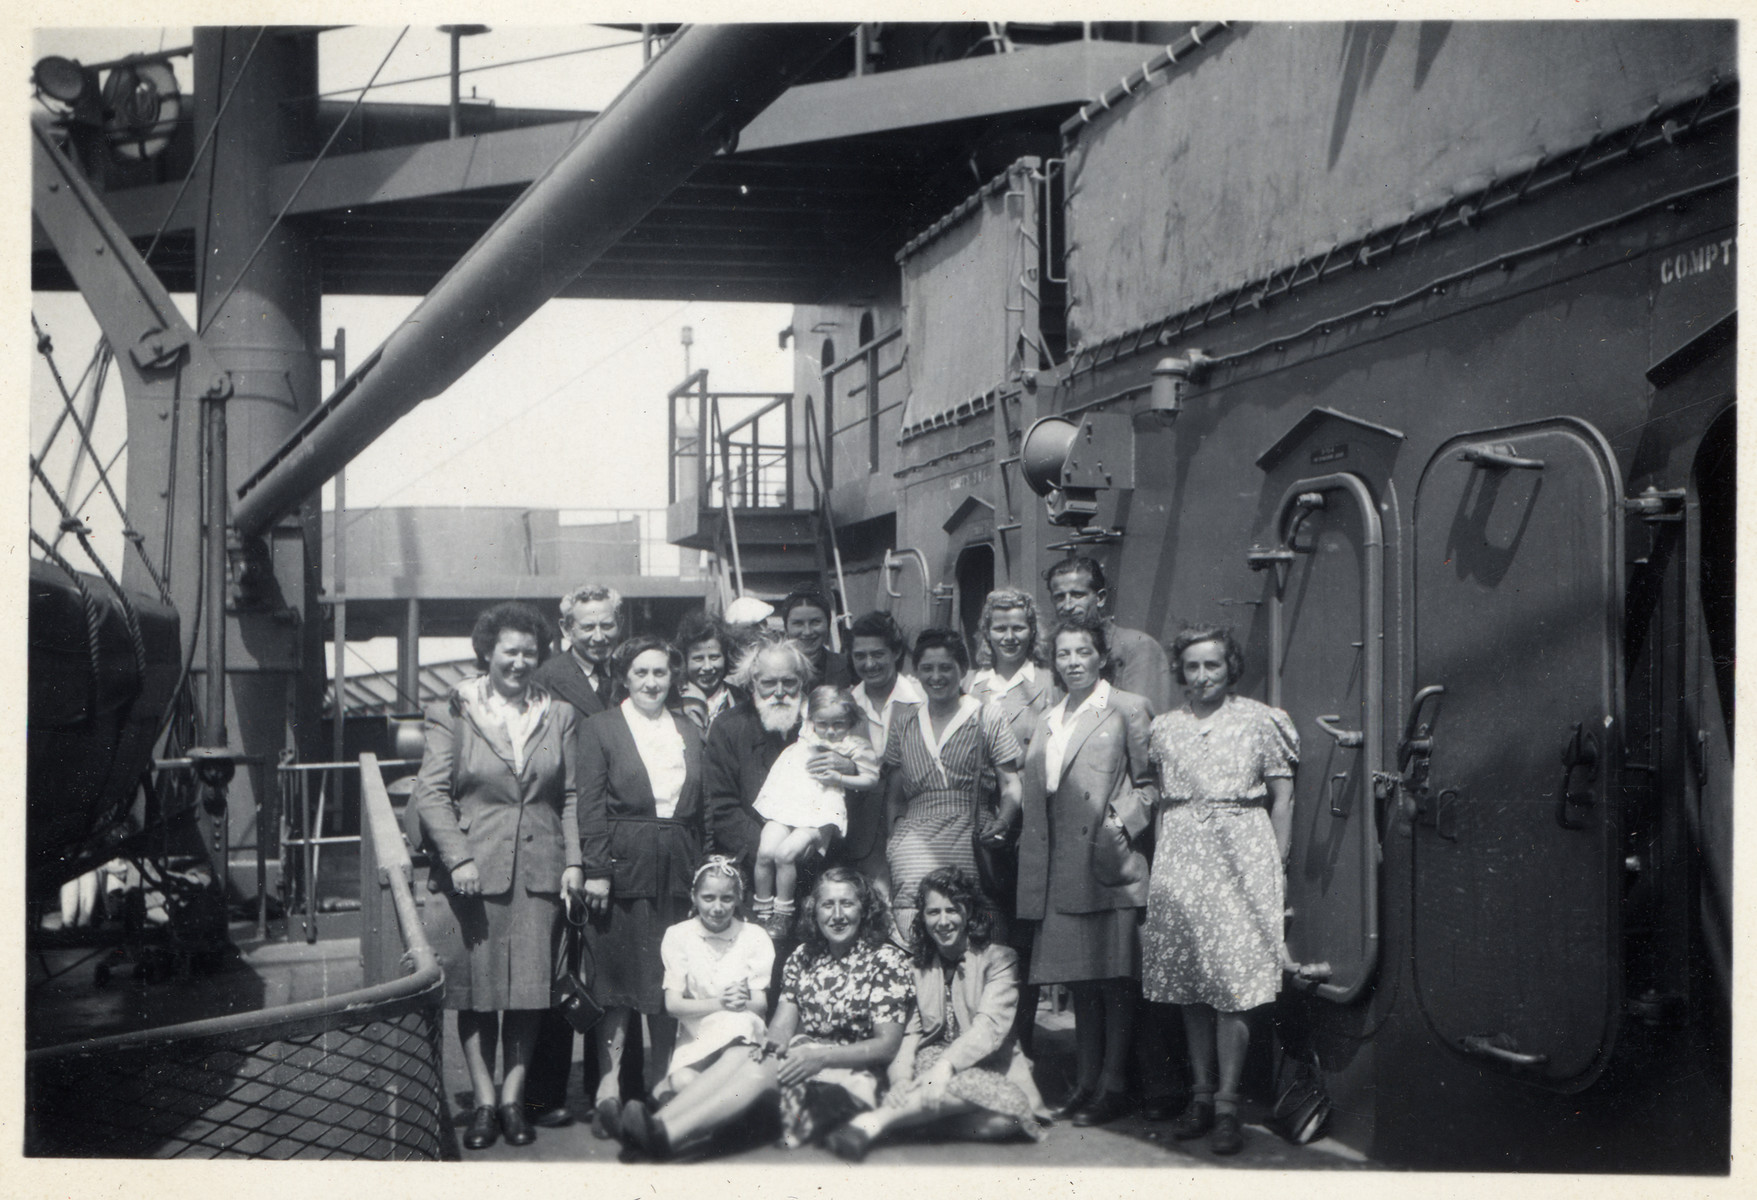 Group portrait of passengers aboard the Marine Perch who are immigrating to the United States after the war.  Among those pictured are Marion (standing on the far left) and Jachet Sauerbrunn (sitting in the center).